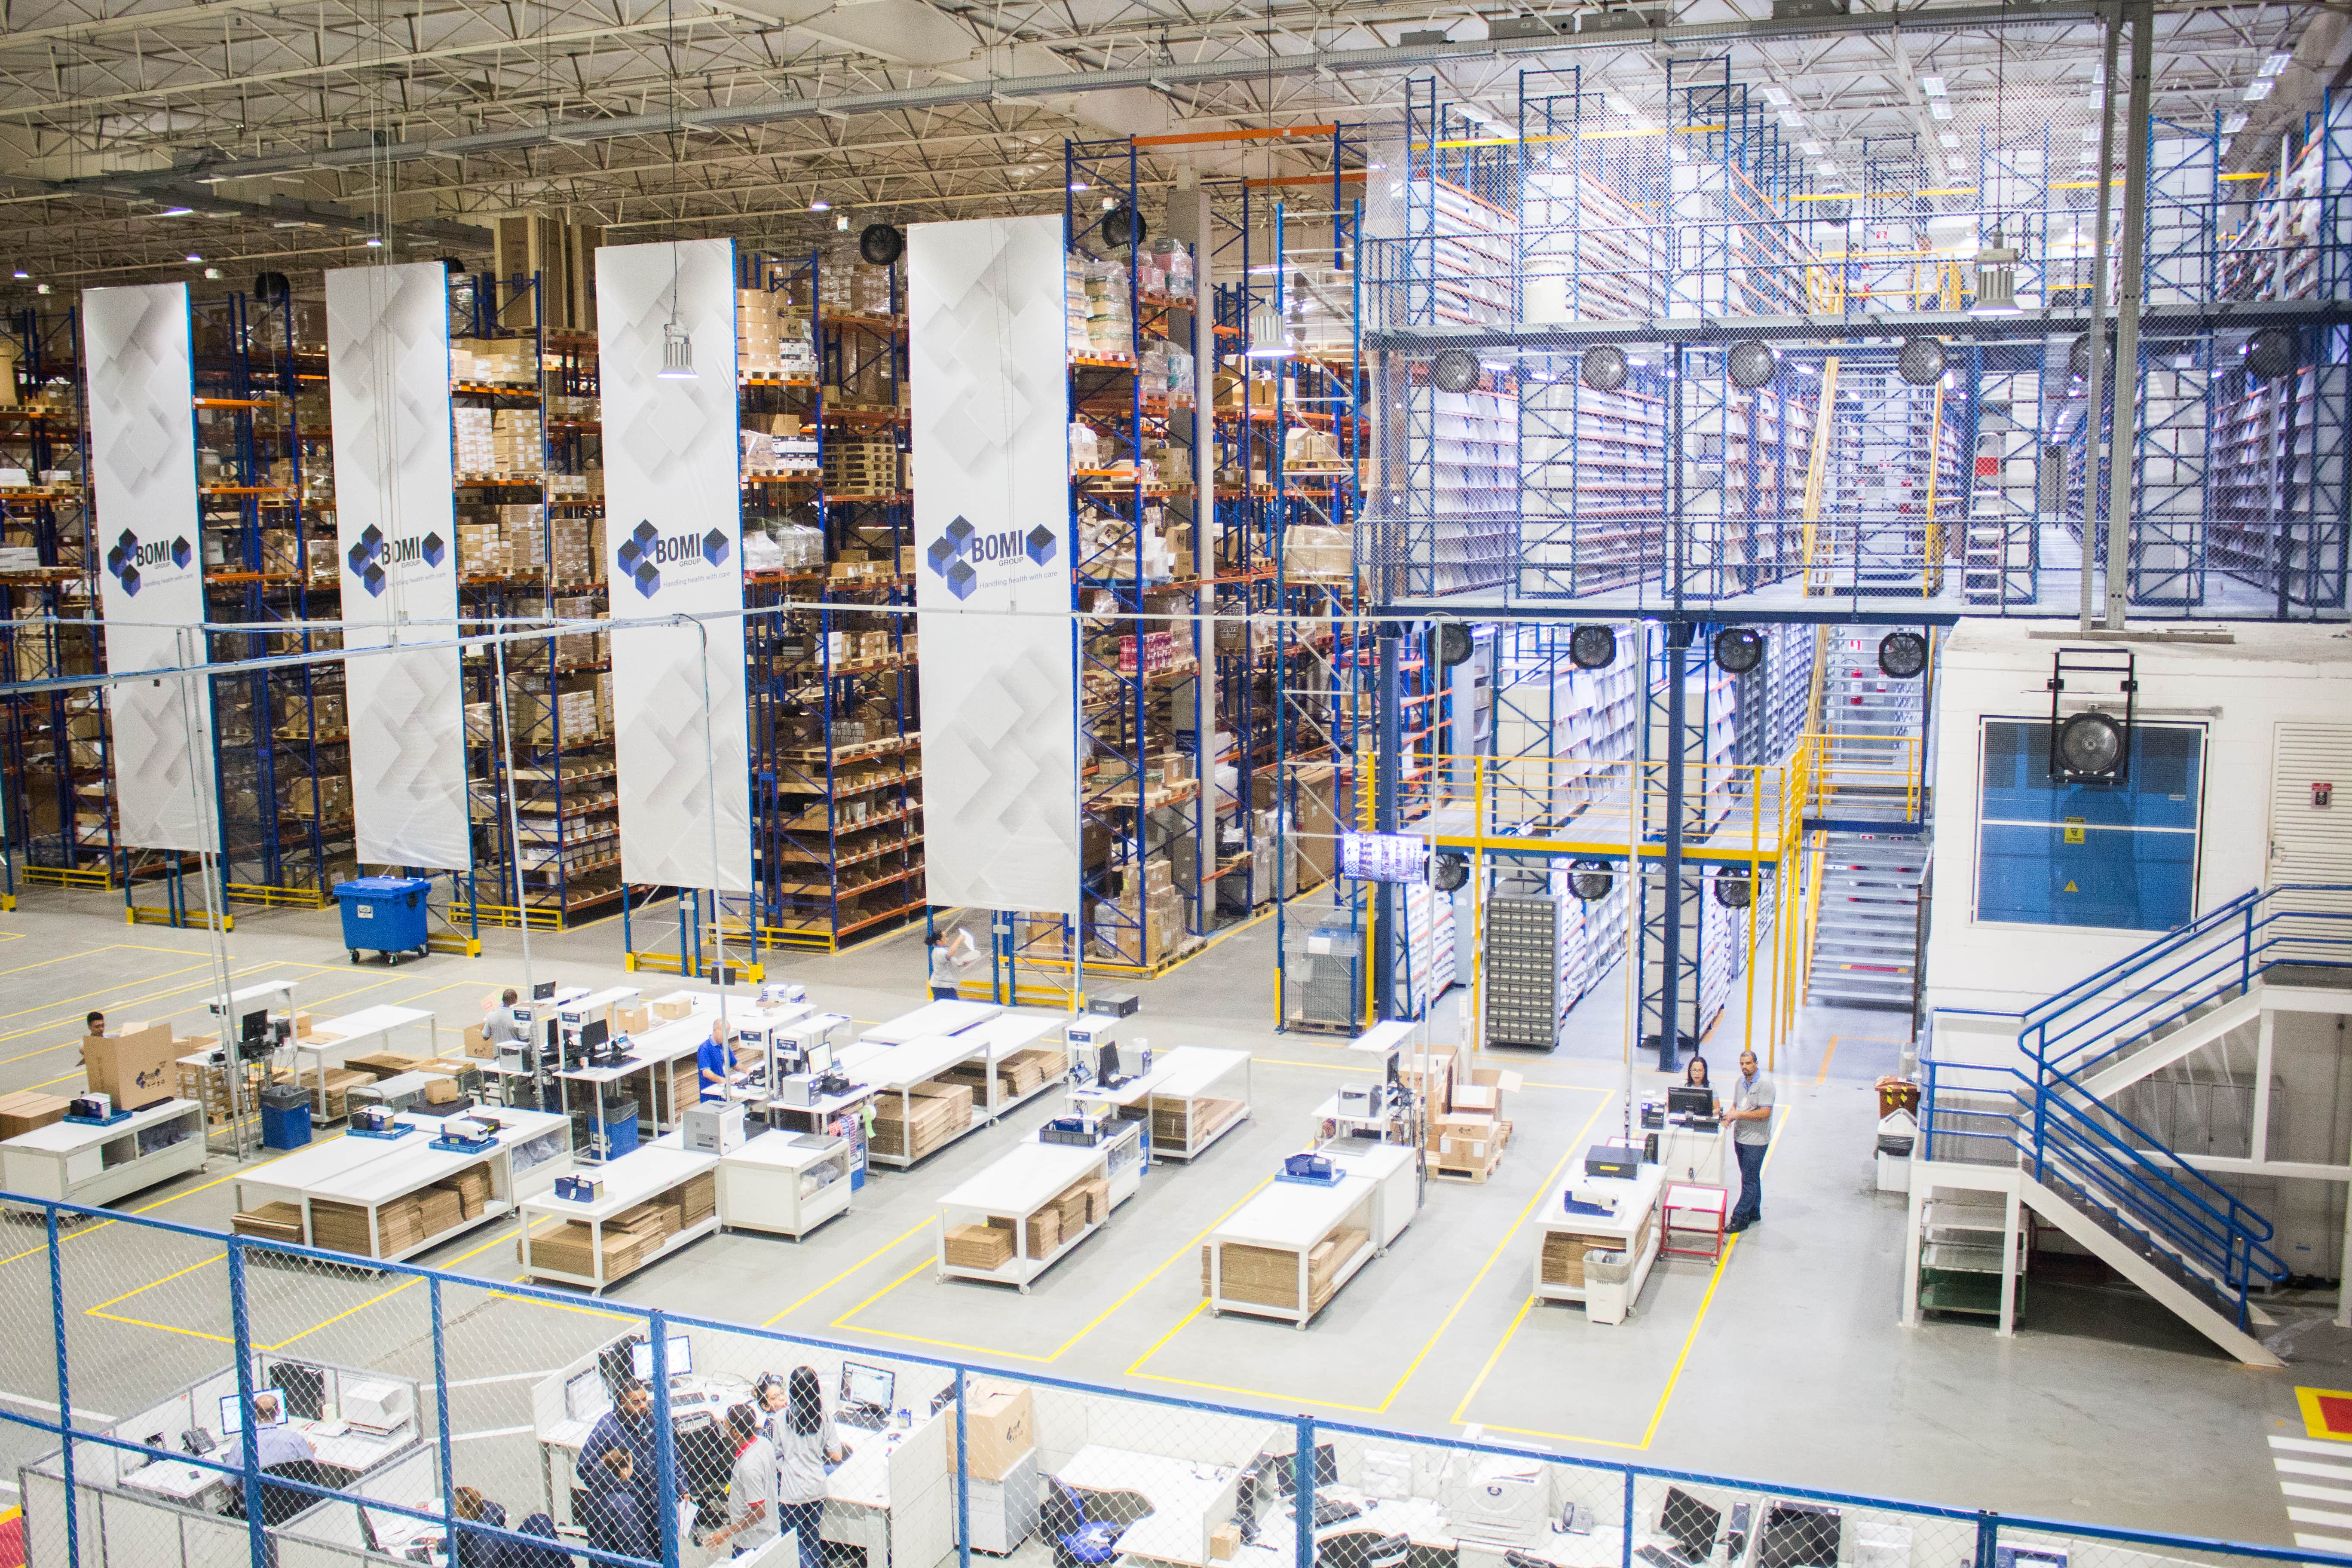 THE ADVANTAGES OF HAVING A SINGLE LOGISTICS PARTNER DEDICATED TO HEALTH CARE